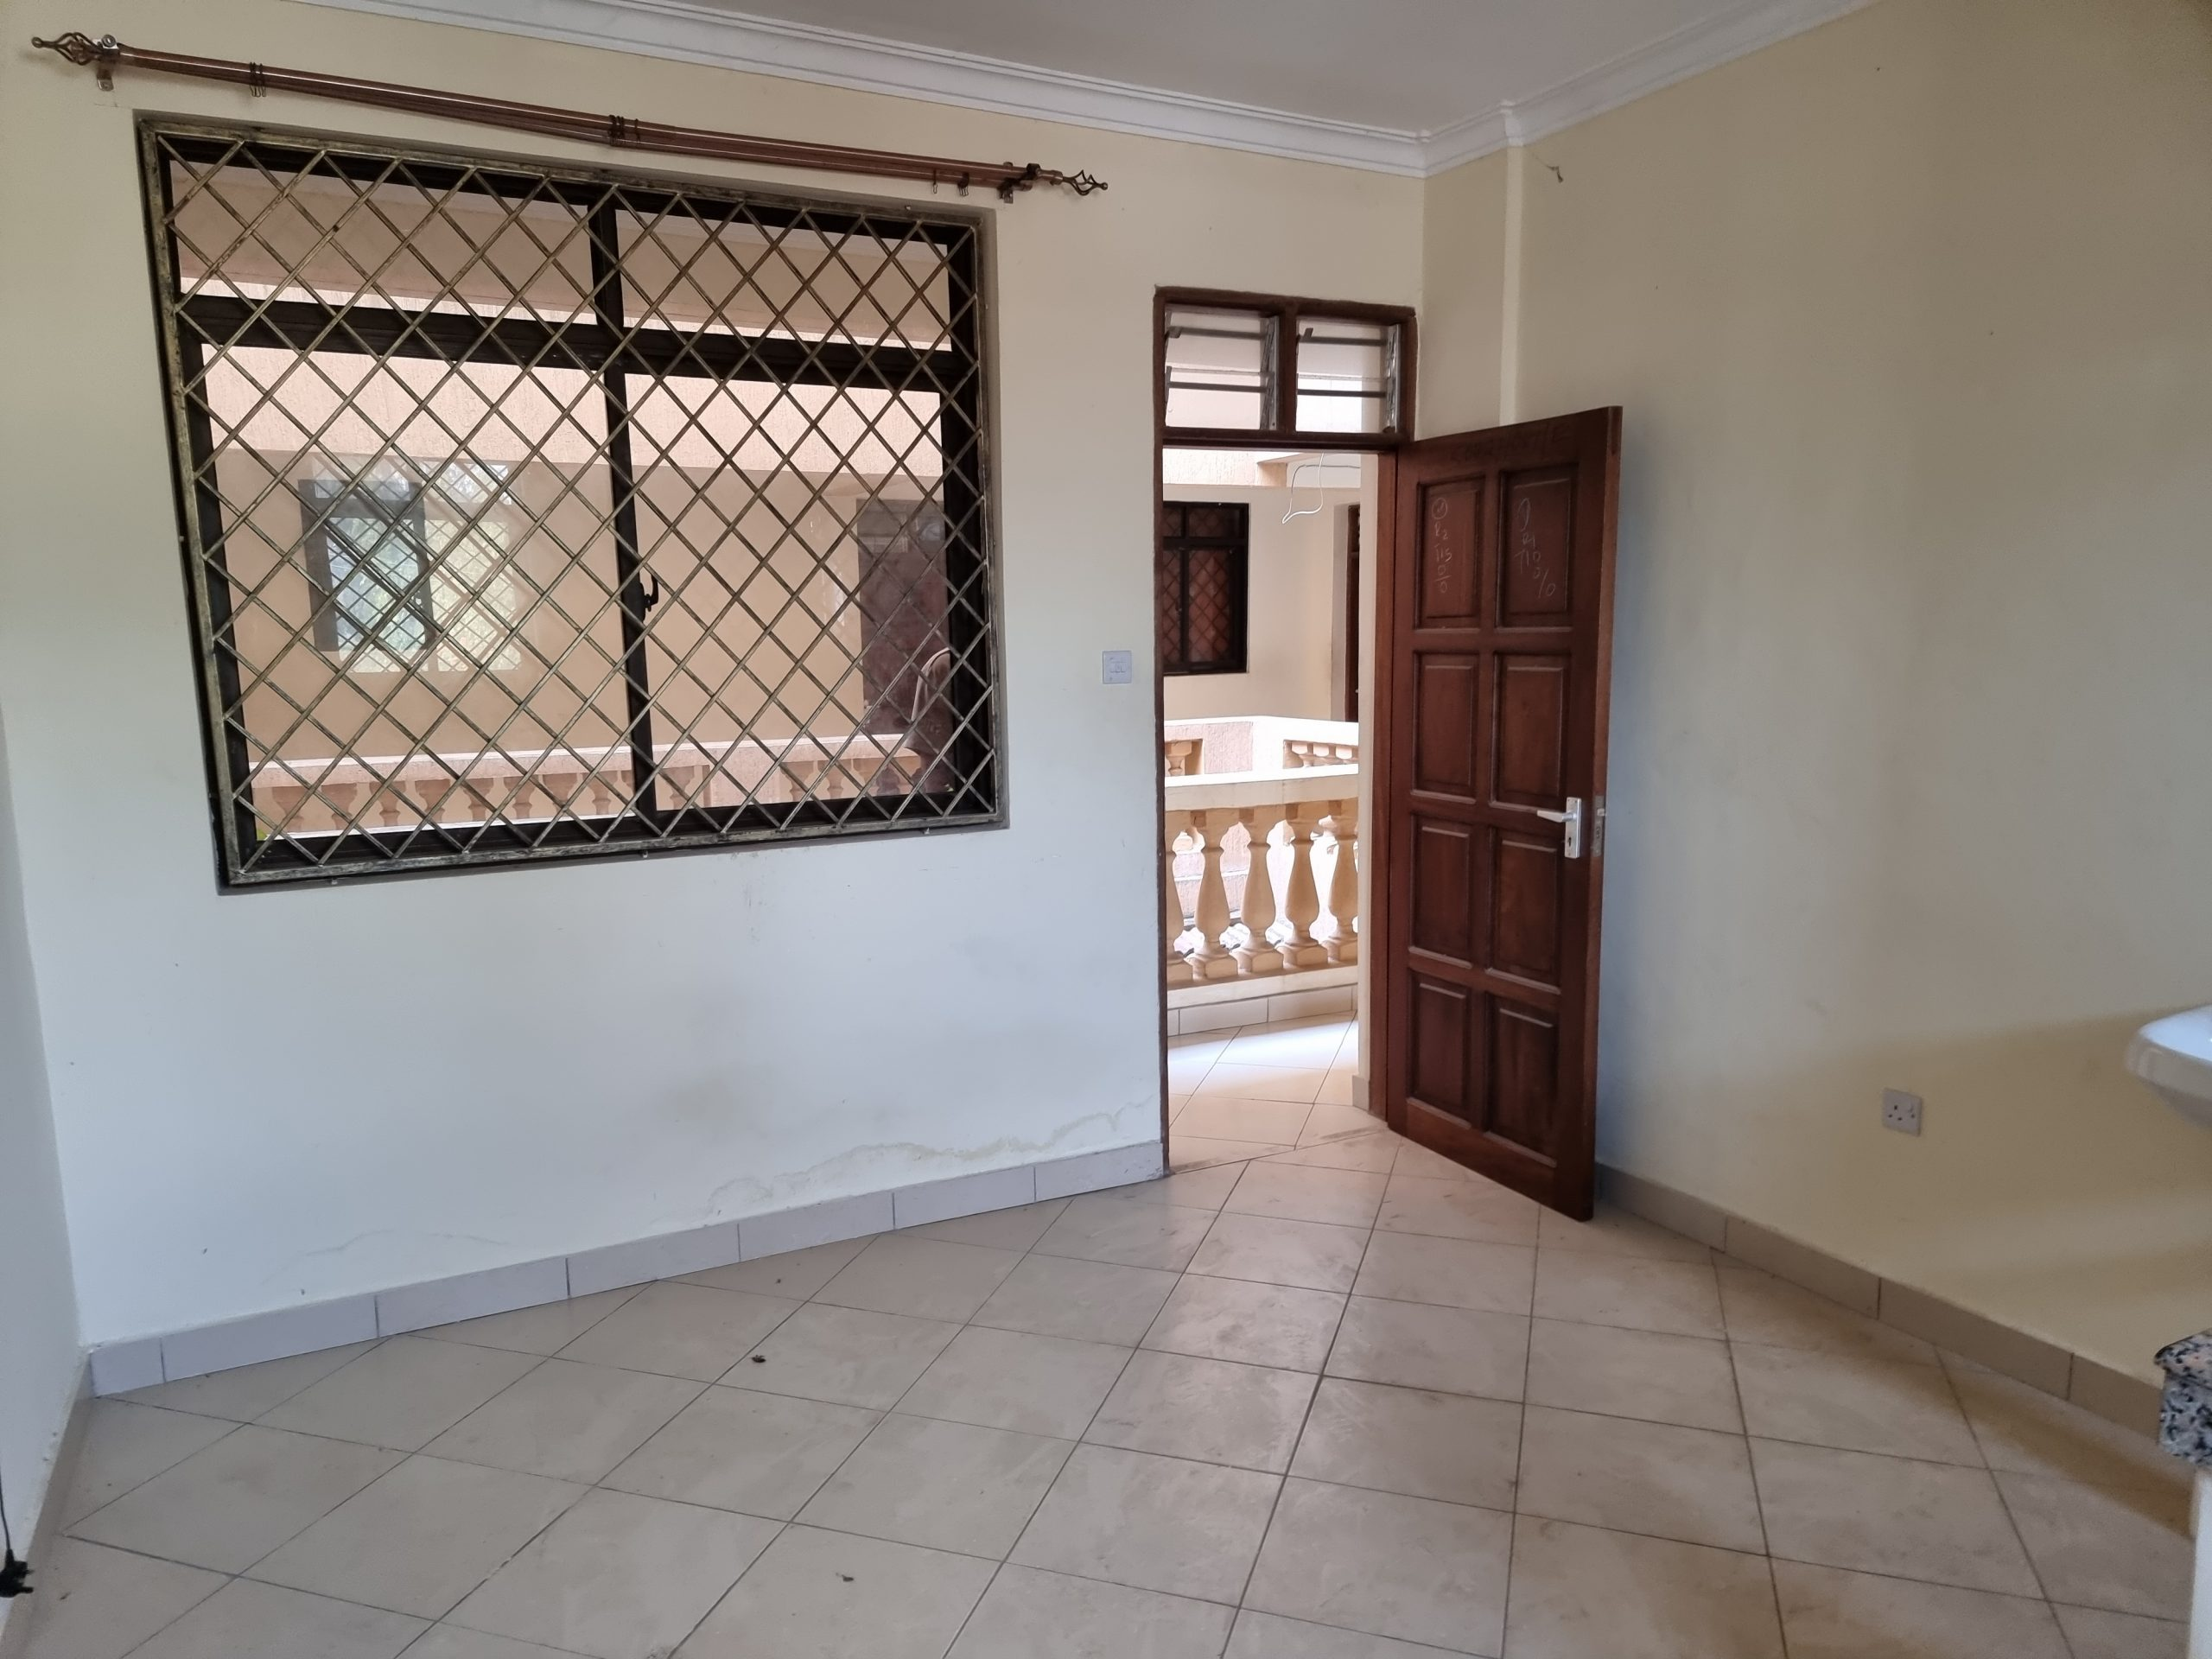 2 br apartment for rent in mtwapa.